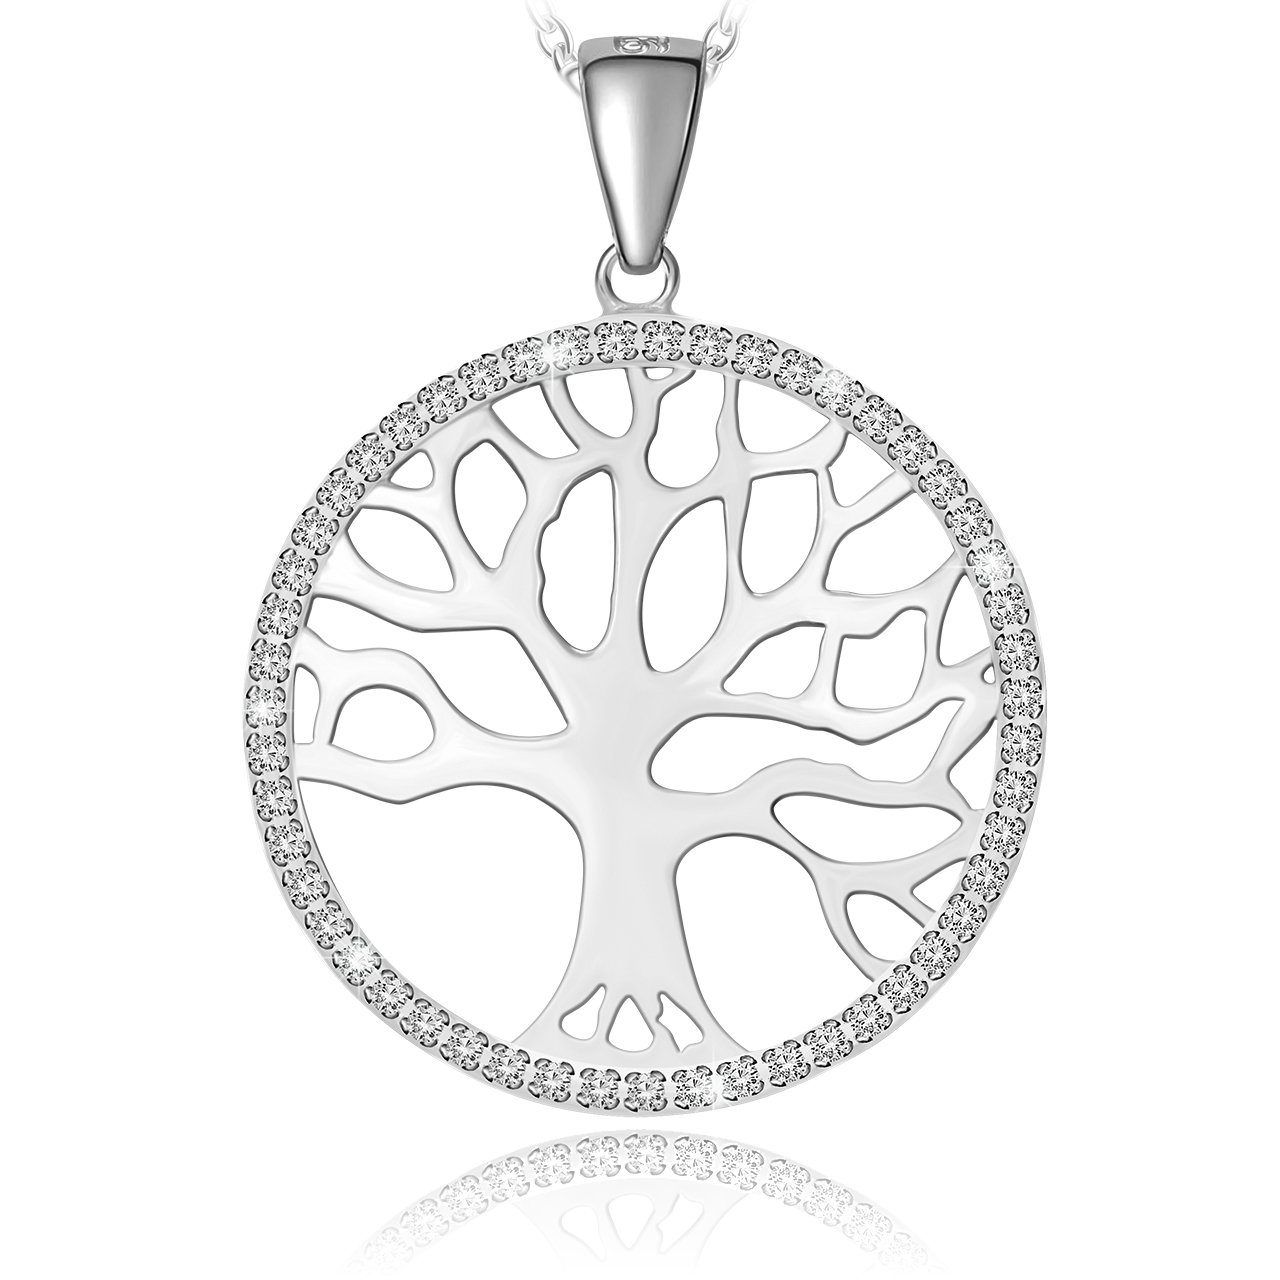 ATMOKO Crystal Pendant Necklace, Rhodium Zircon Sterling Silver Tree of Life Pendant Necklace, Gifts for Women,Girlfriend,Mom, Wife, Sister